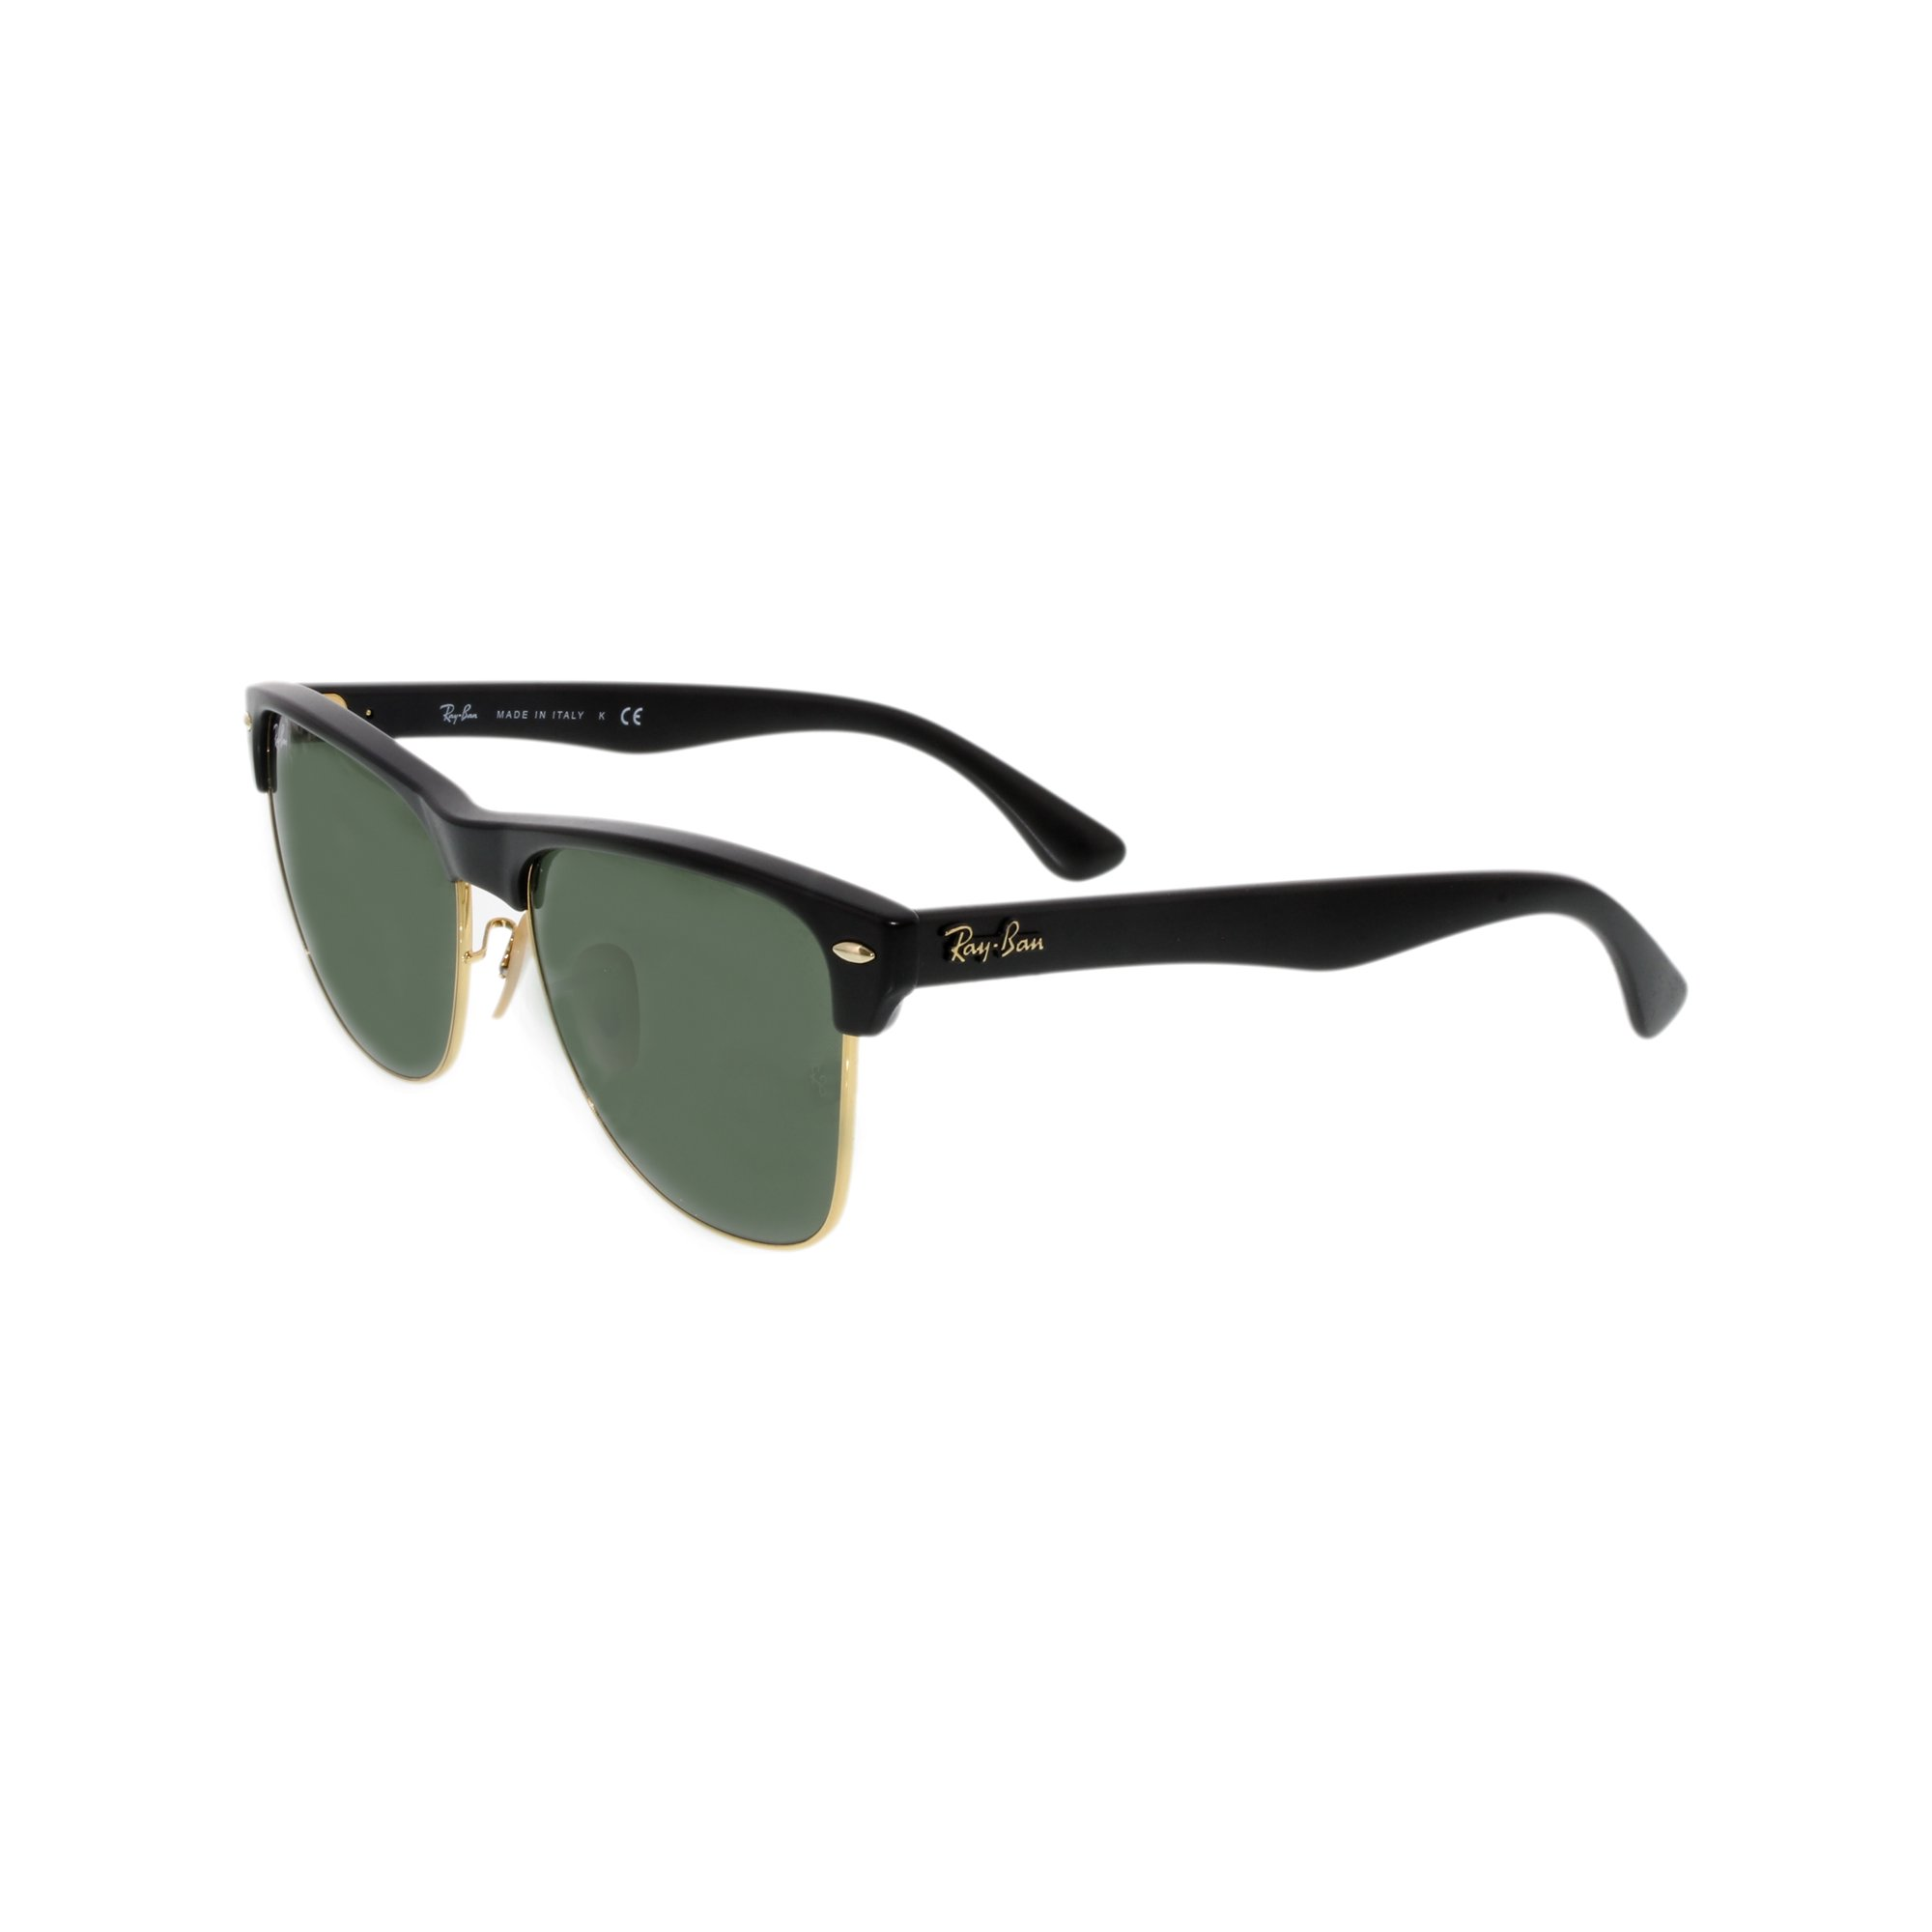 2dbaaacc4a1d6 Ray-Ban Men s Clubmaster Oversized RB4175-877-57 Black Square Sunglasses